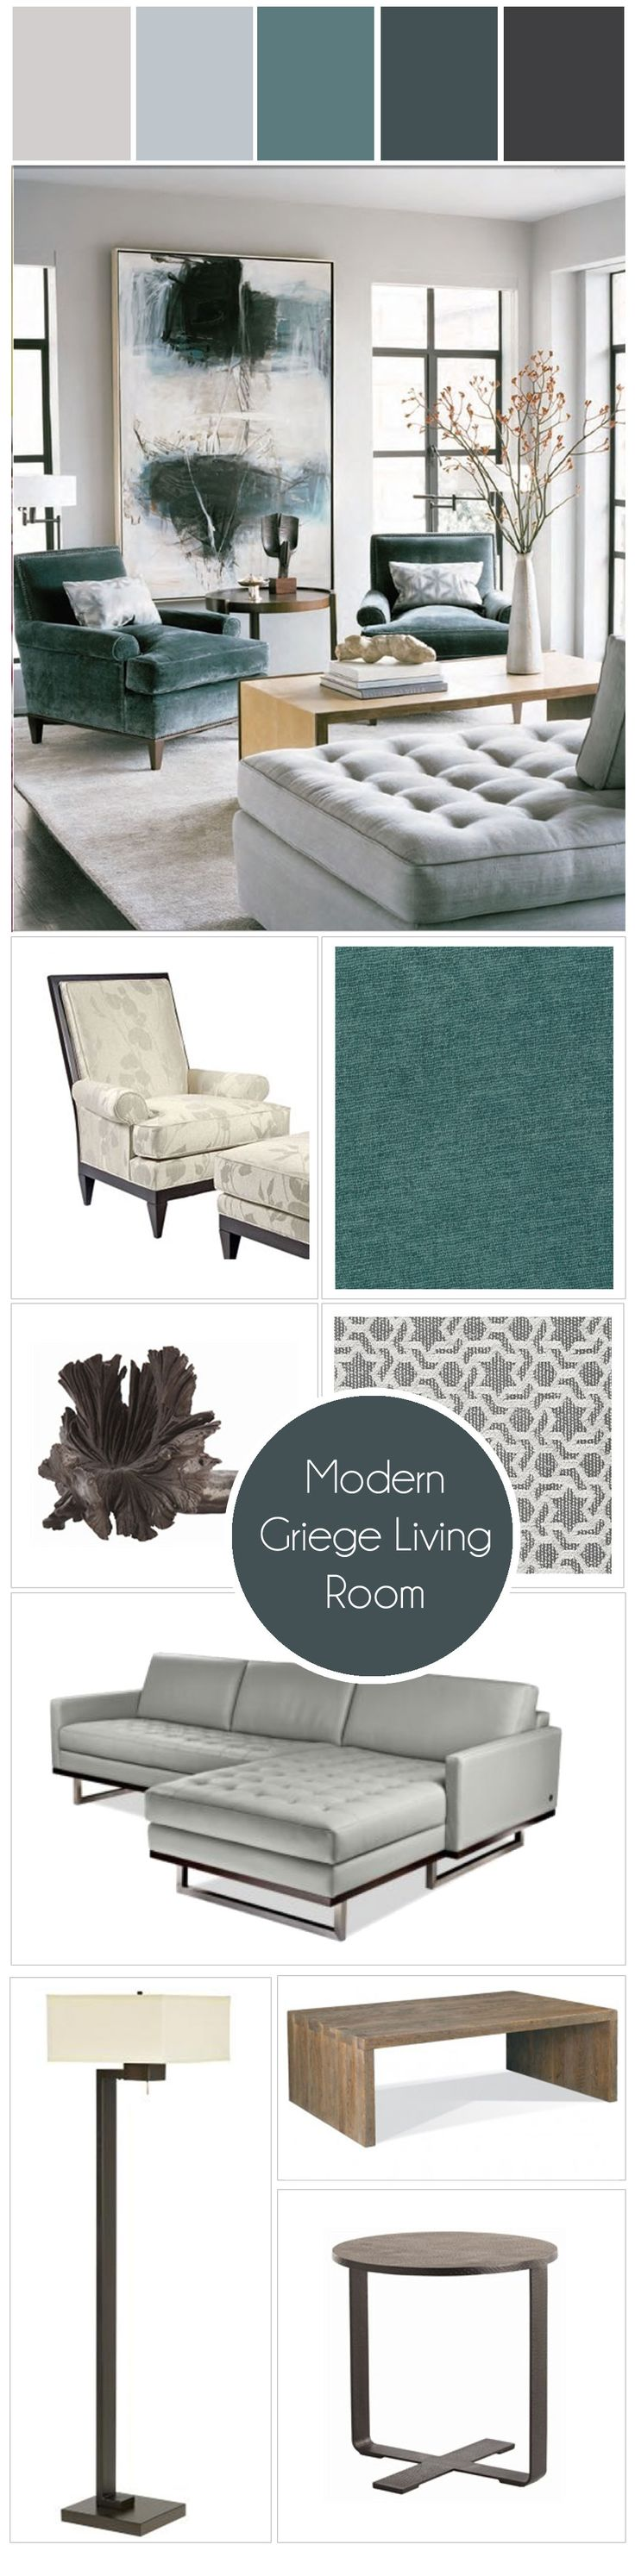 Canada's Got Colour Winner | Griege + Teal Modern Living Room. I think this is the color combo I'm going with to go with my turquoise chairs. Luxurious interior design ideas perfect for your projects. #interiors #design #homedecor www.covetlounge.net